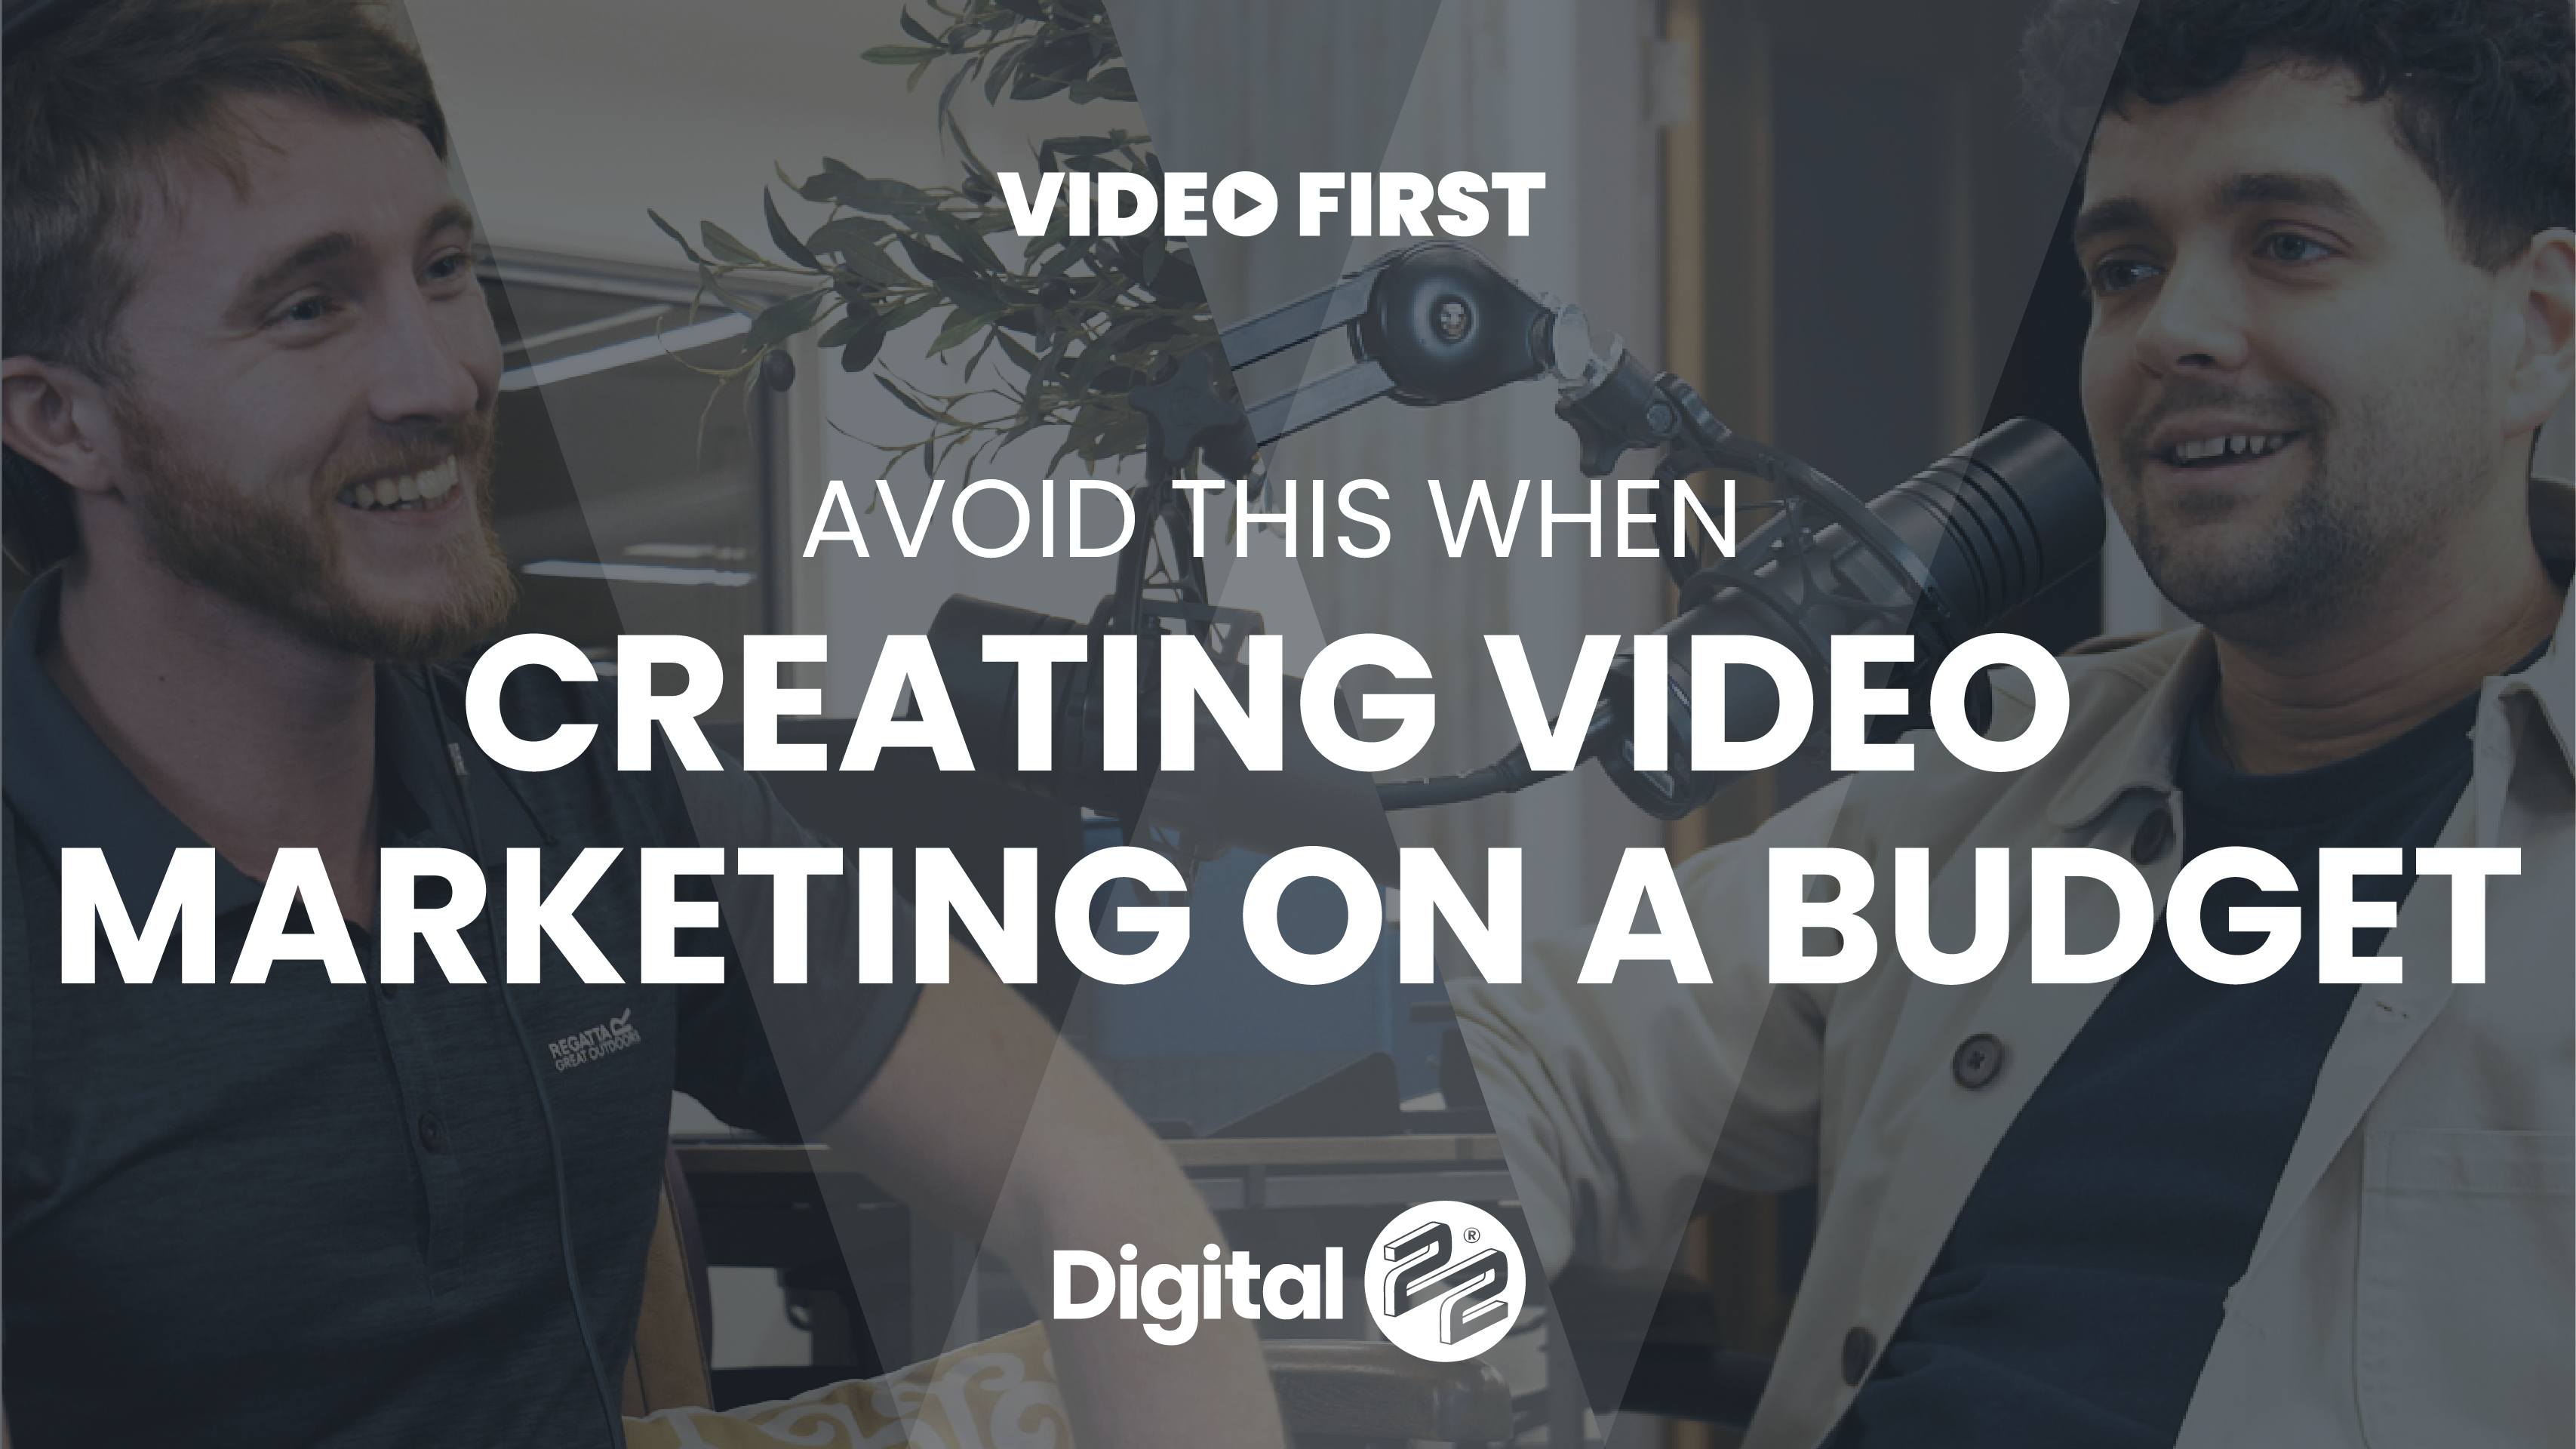 VIDEO FIRST: Avoid this when creating video marketing on a budget